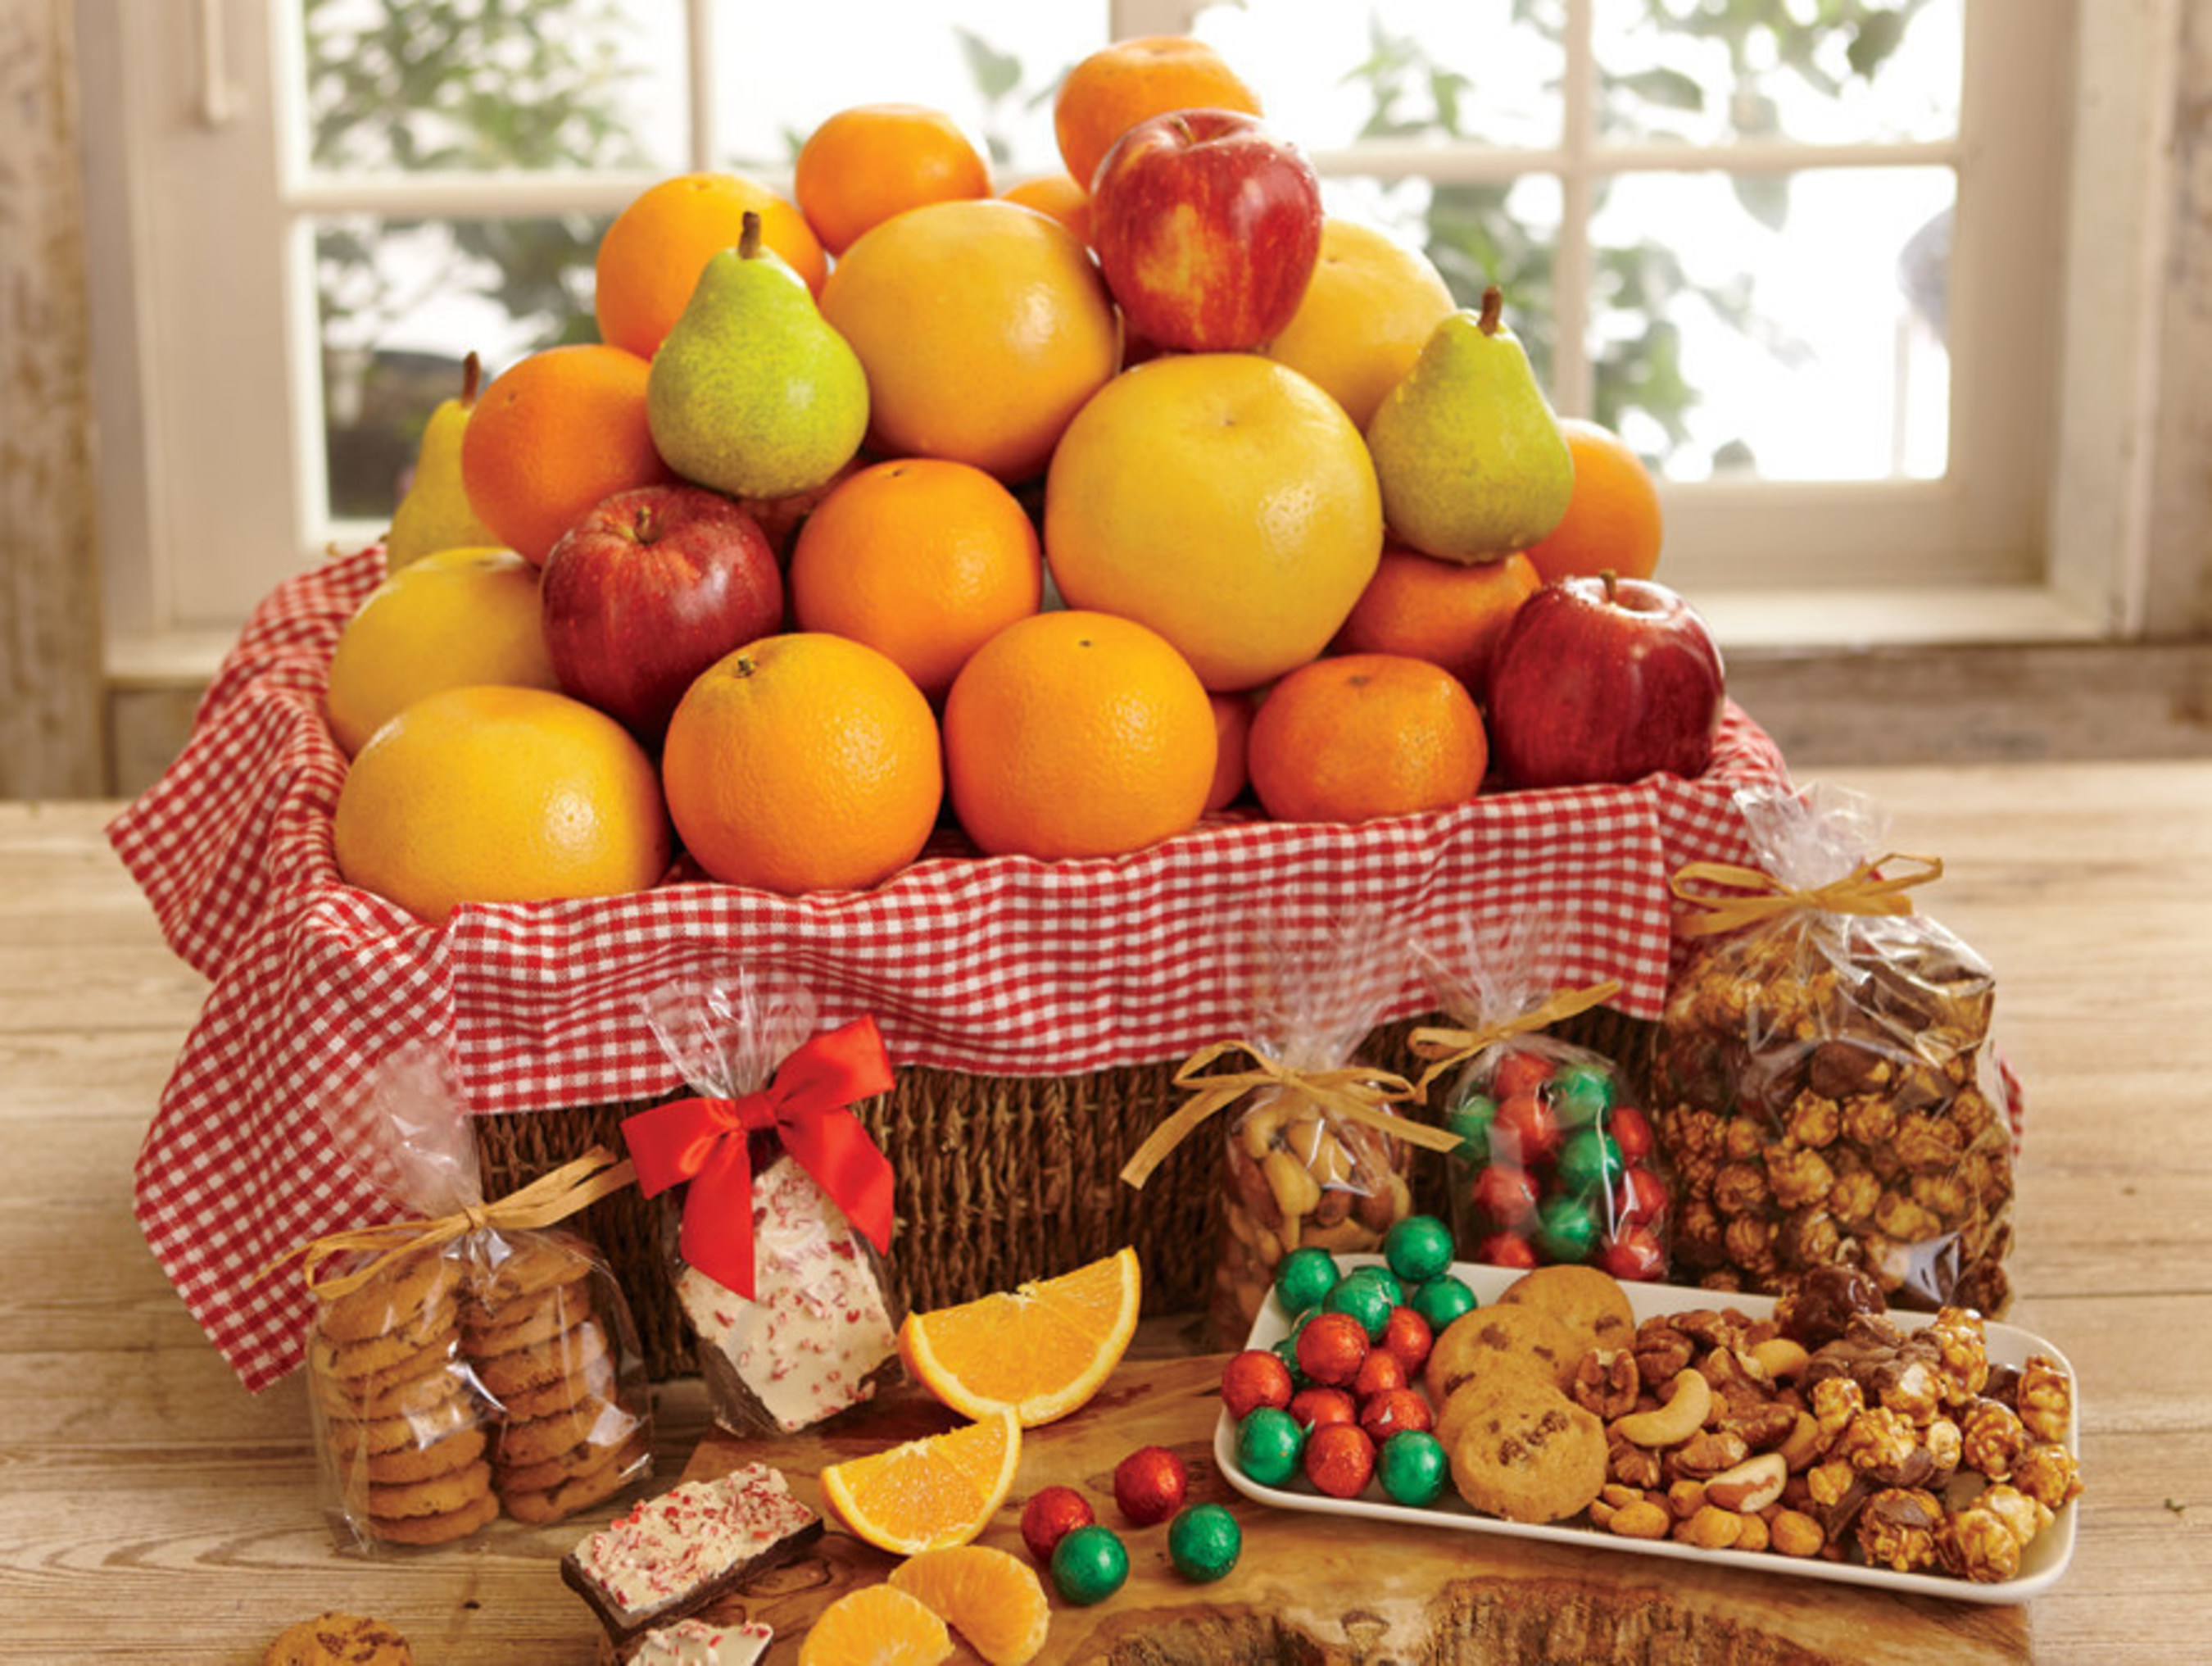 Unique fruit gifts shipped fresh by Hale Groves in Vero Beach, Florida